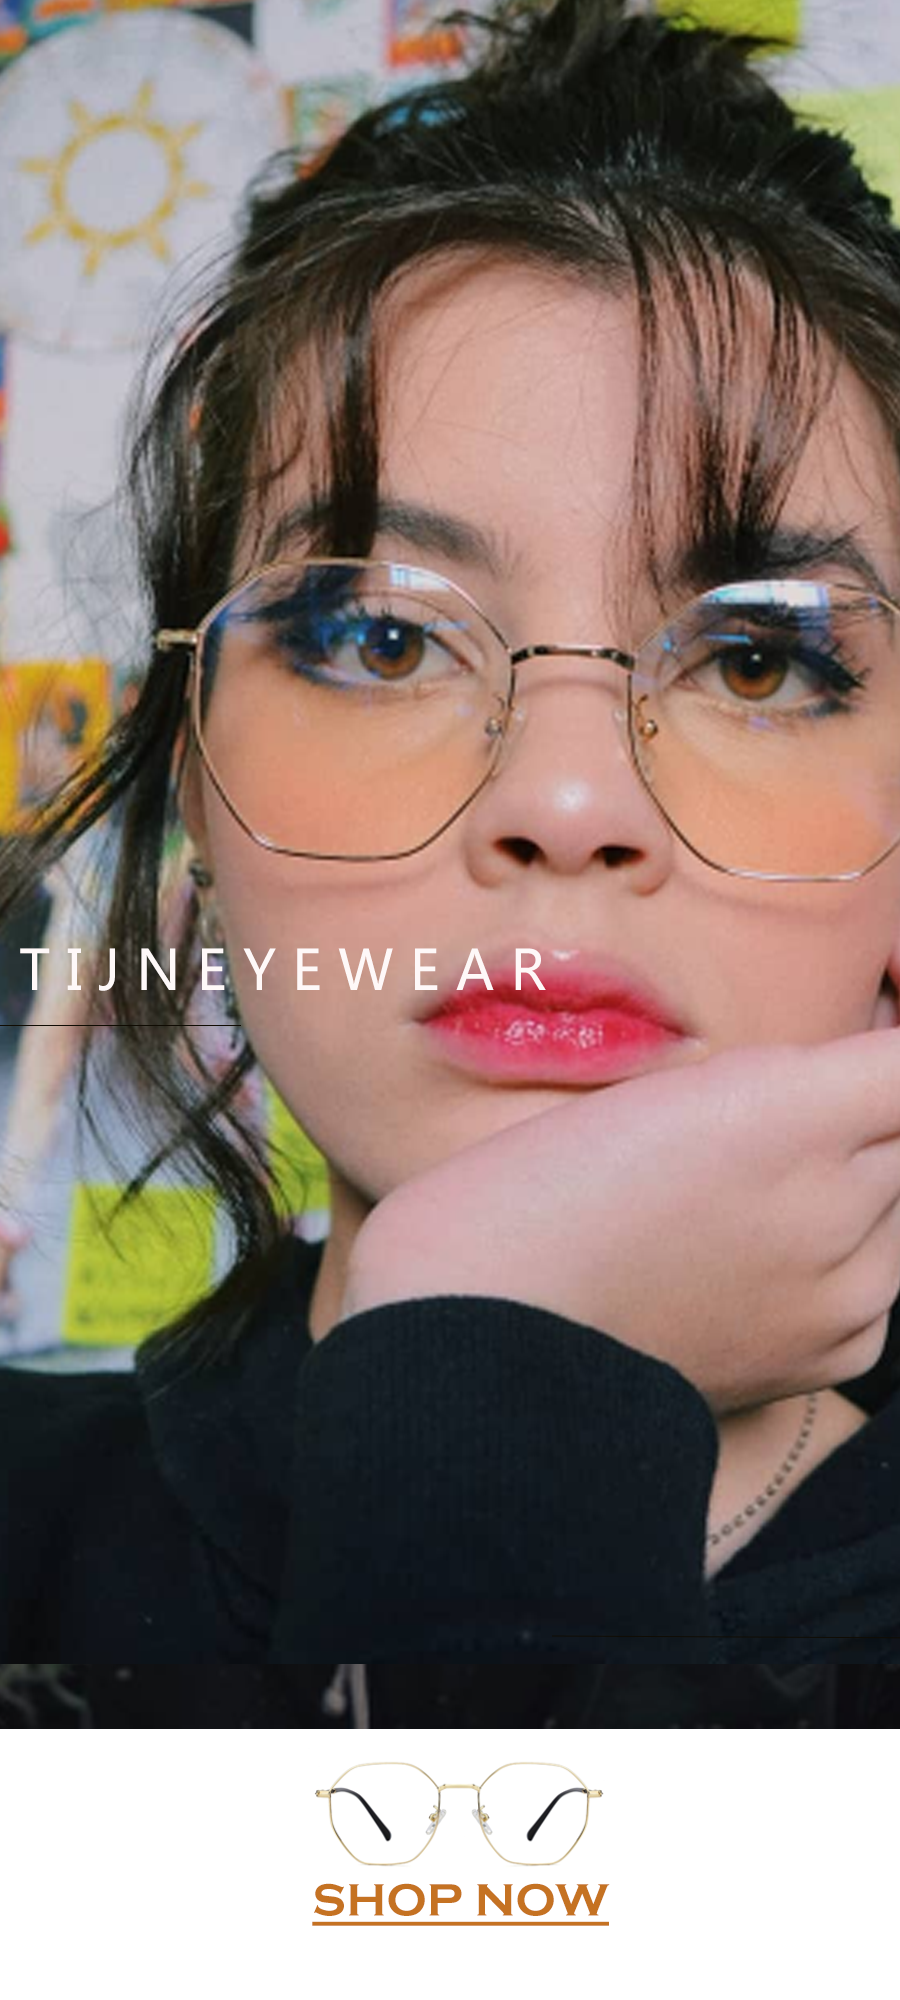 e46d60bb9a9e Top 5 glasses for this summer you never wanna miss. #TIJNeyewear #glasses  #fashion#eye-wear#street fashion#optical glasses